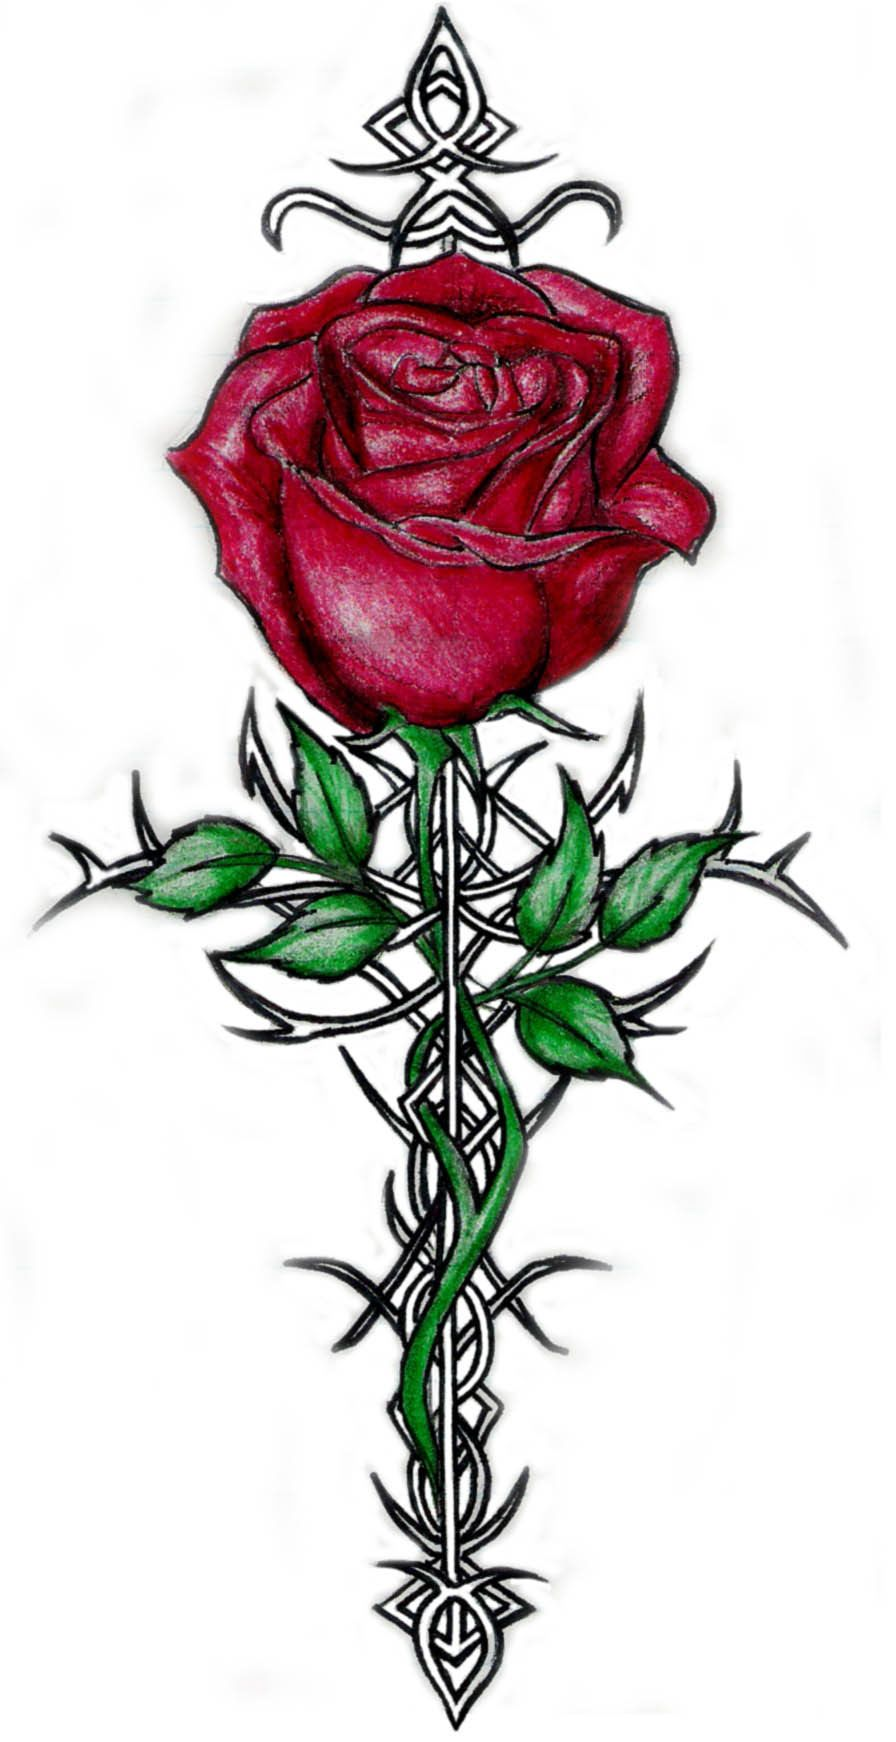 Tattoos Of Roses With Thorns Rose And Thorn Tattoos Cool Tattoos